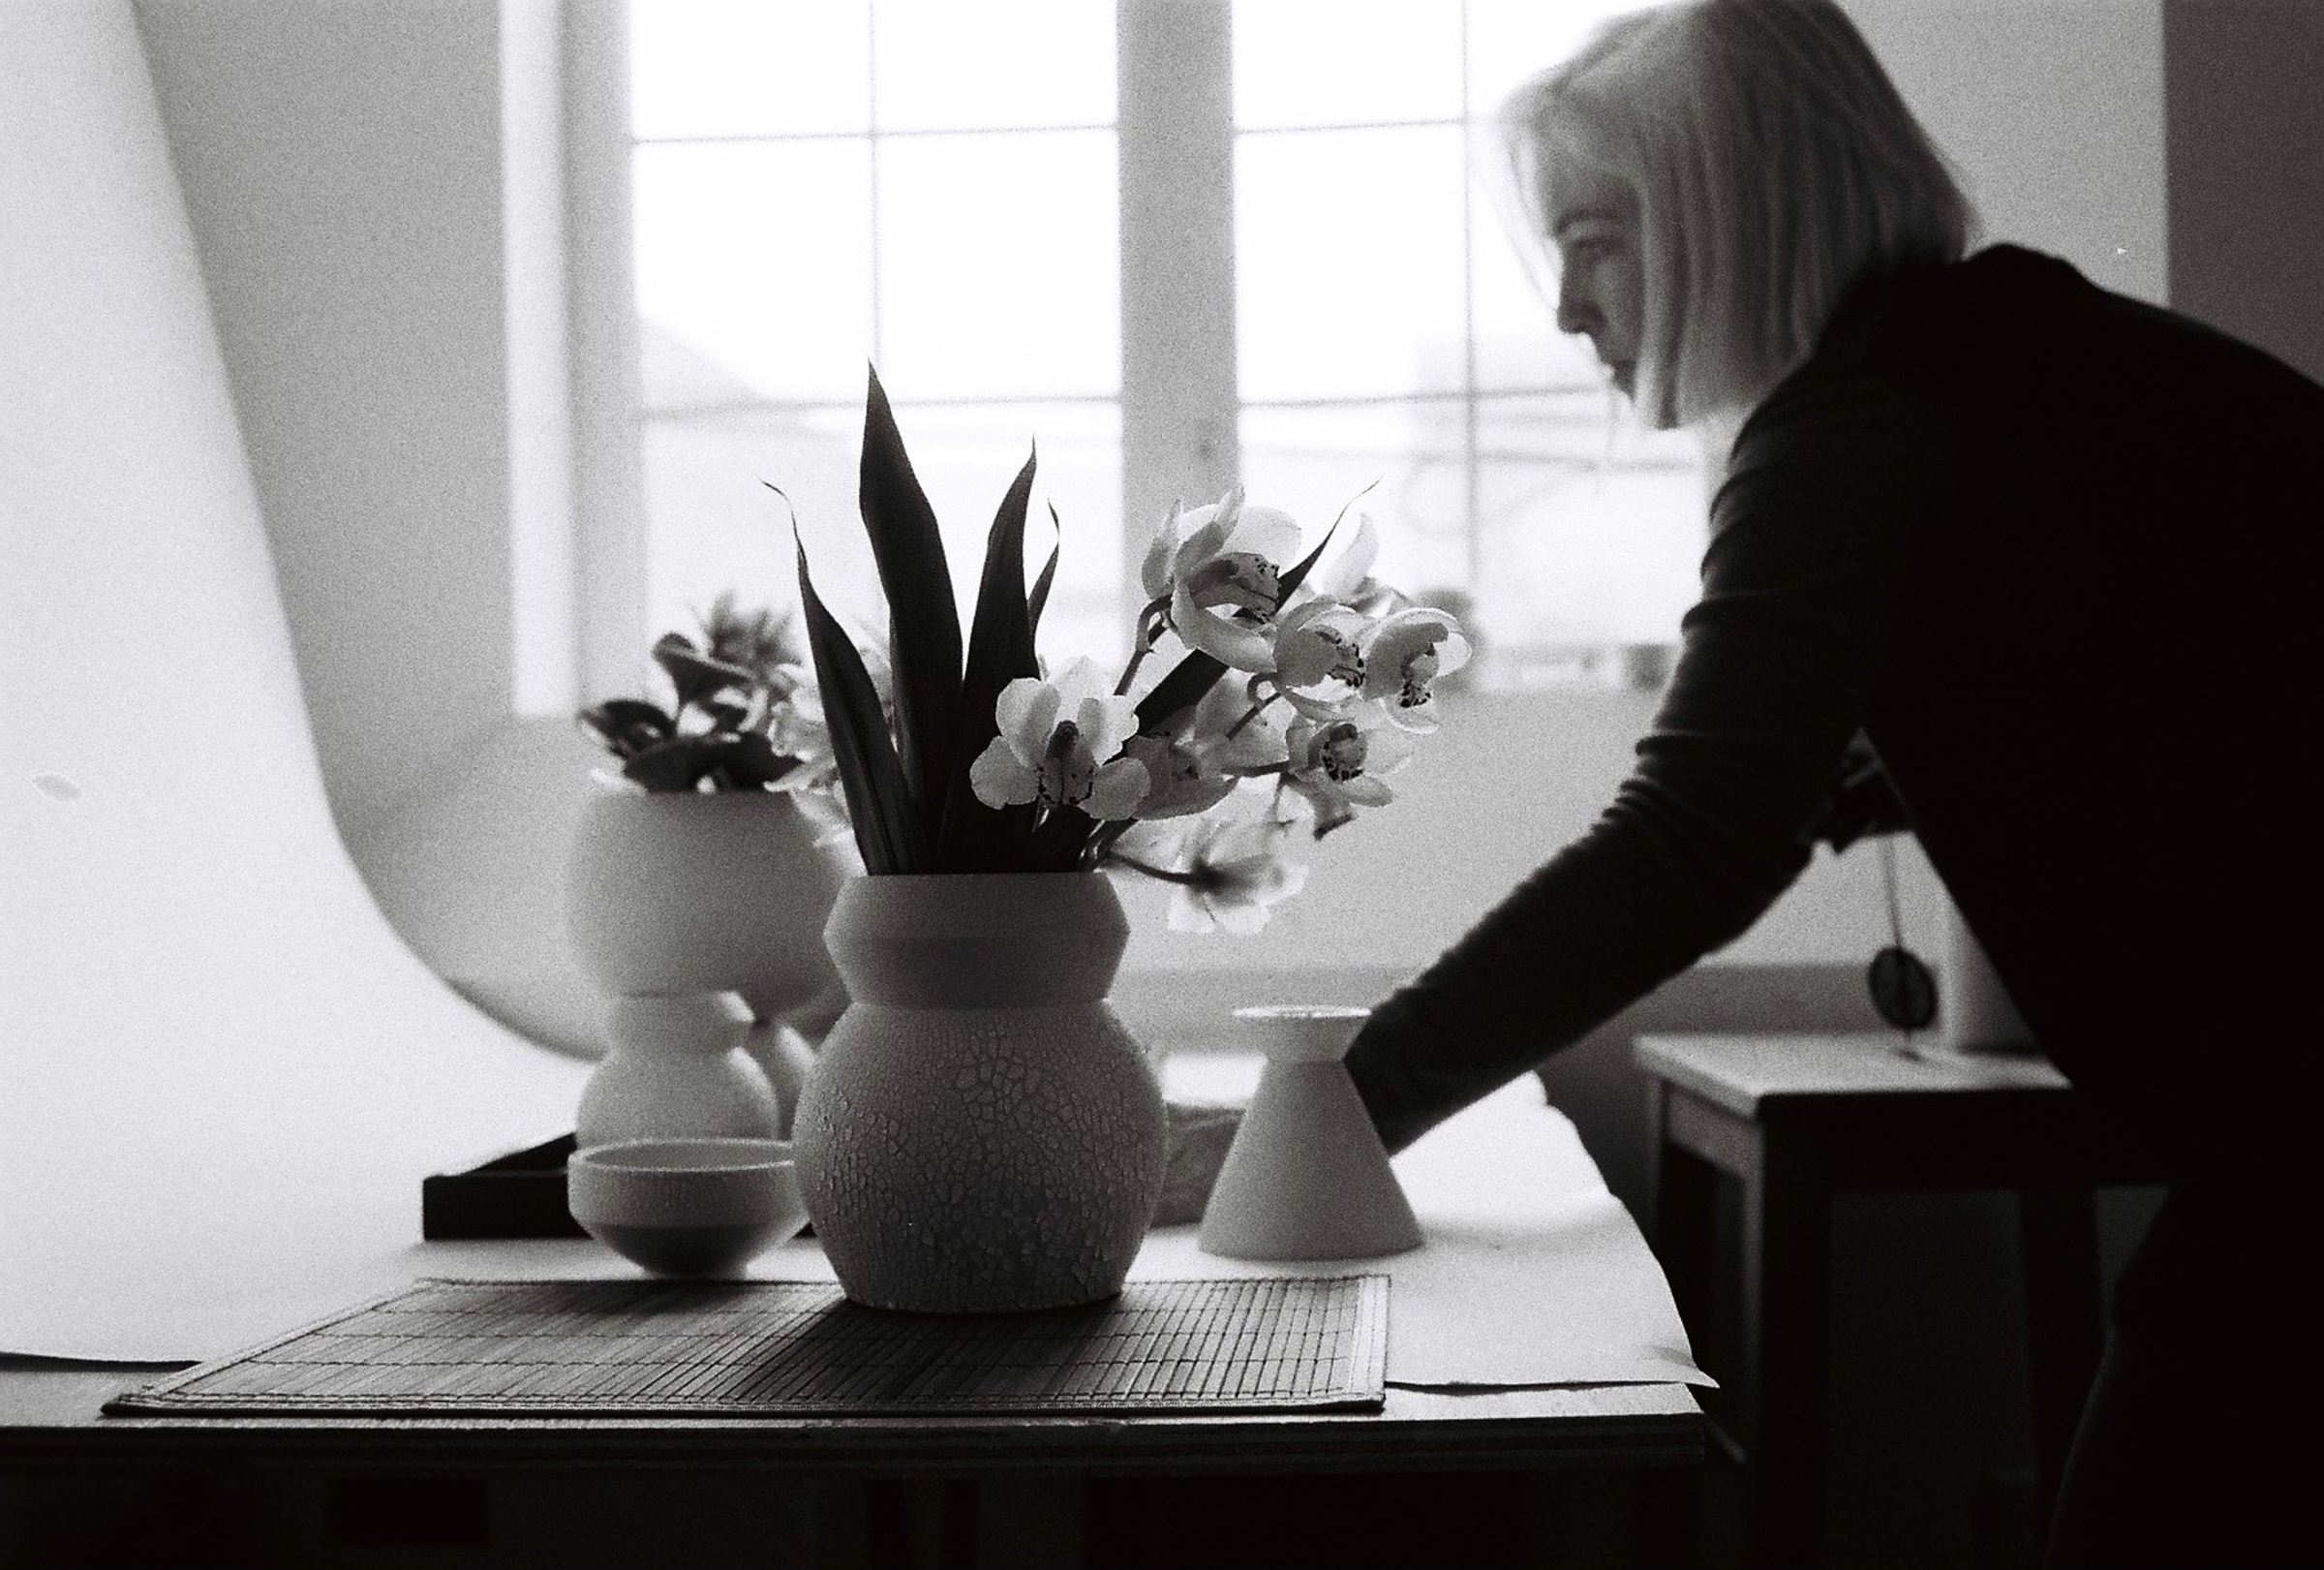 Monique Skelton taking photographs of her pots in a Japanese style shoot.